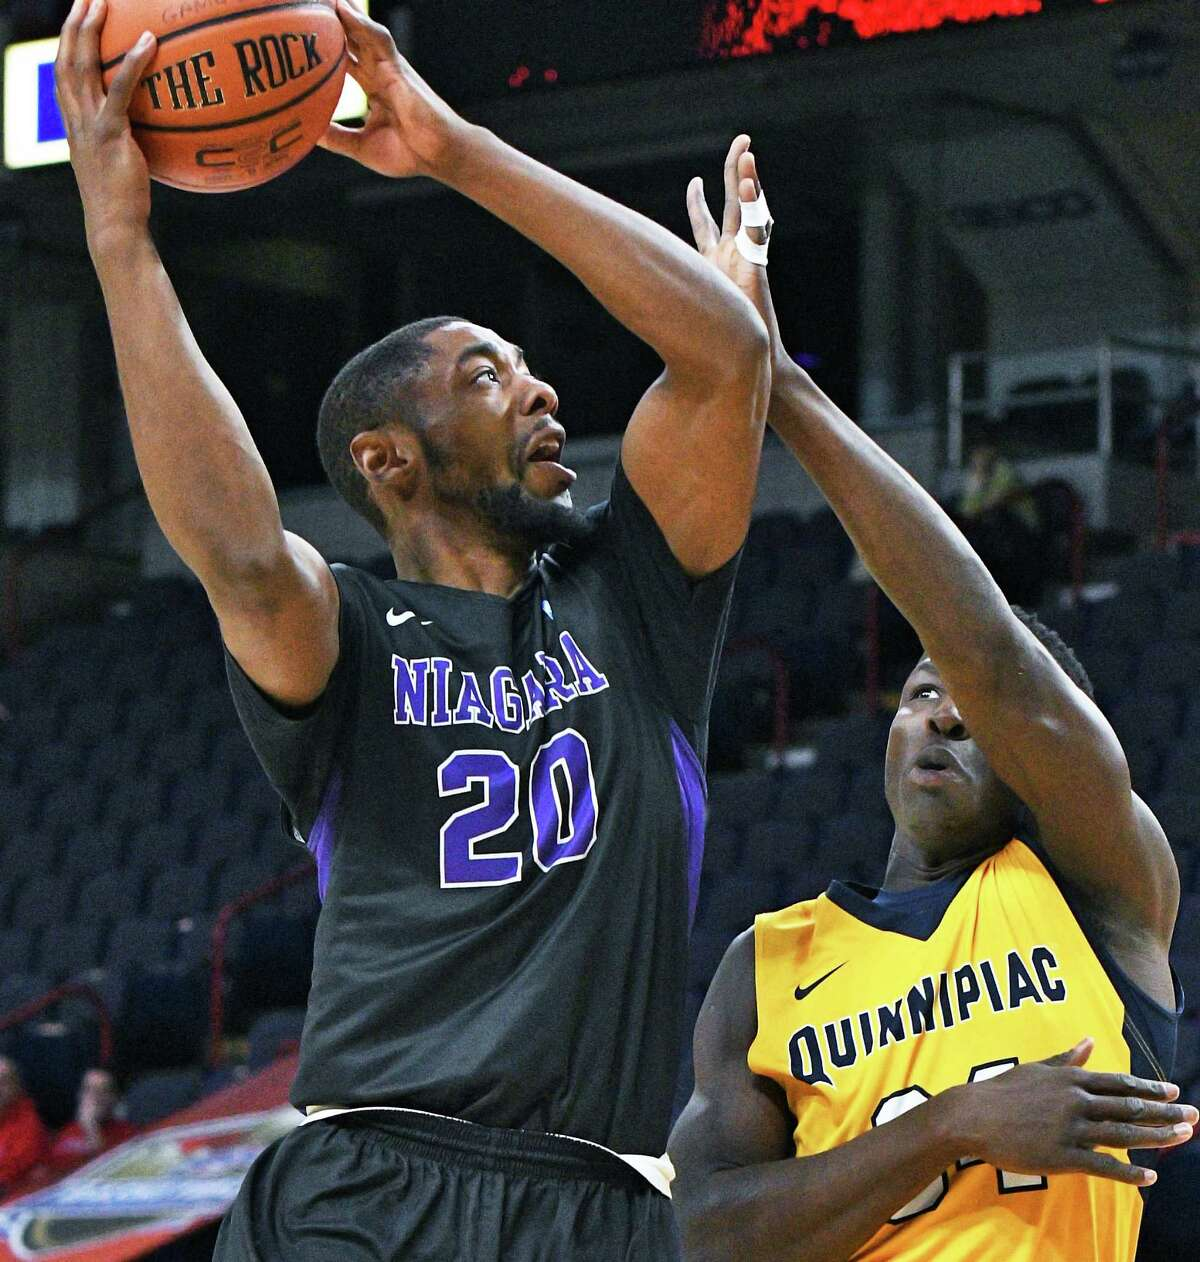 Niagara's #20 Maurice Taylor Jr., left, goes to the net as Quinnipiac's #34 Abdulai Bundu defends during their first round MACC tourney game at the Times Union Center Thursday March 2, 2017 in Albany, NY. (John Carl D'Annibale / Times Union)